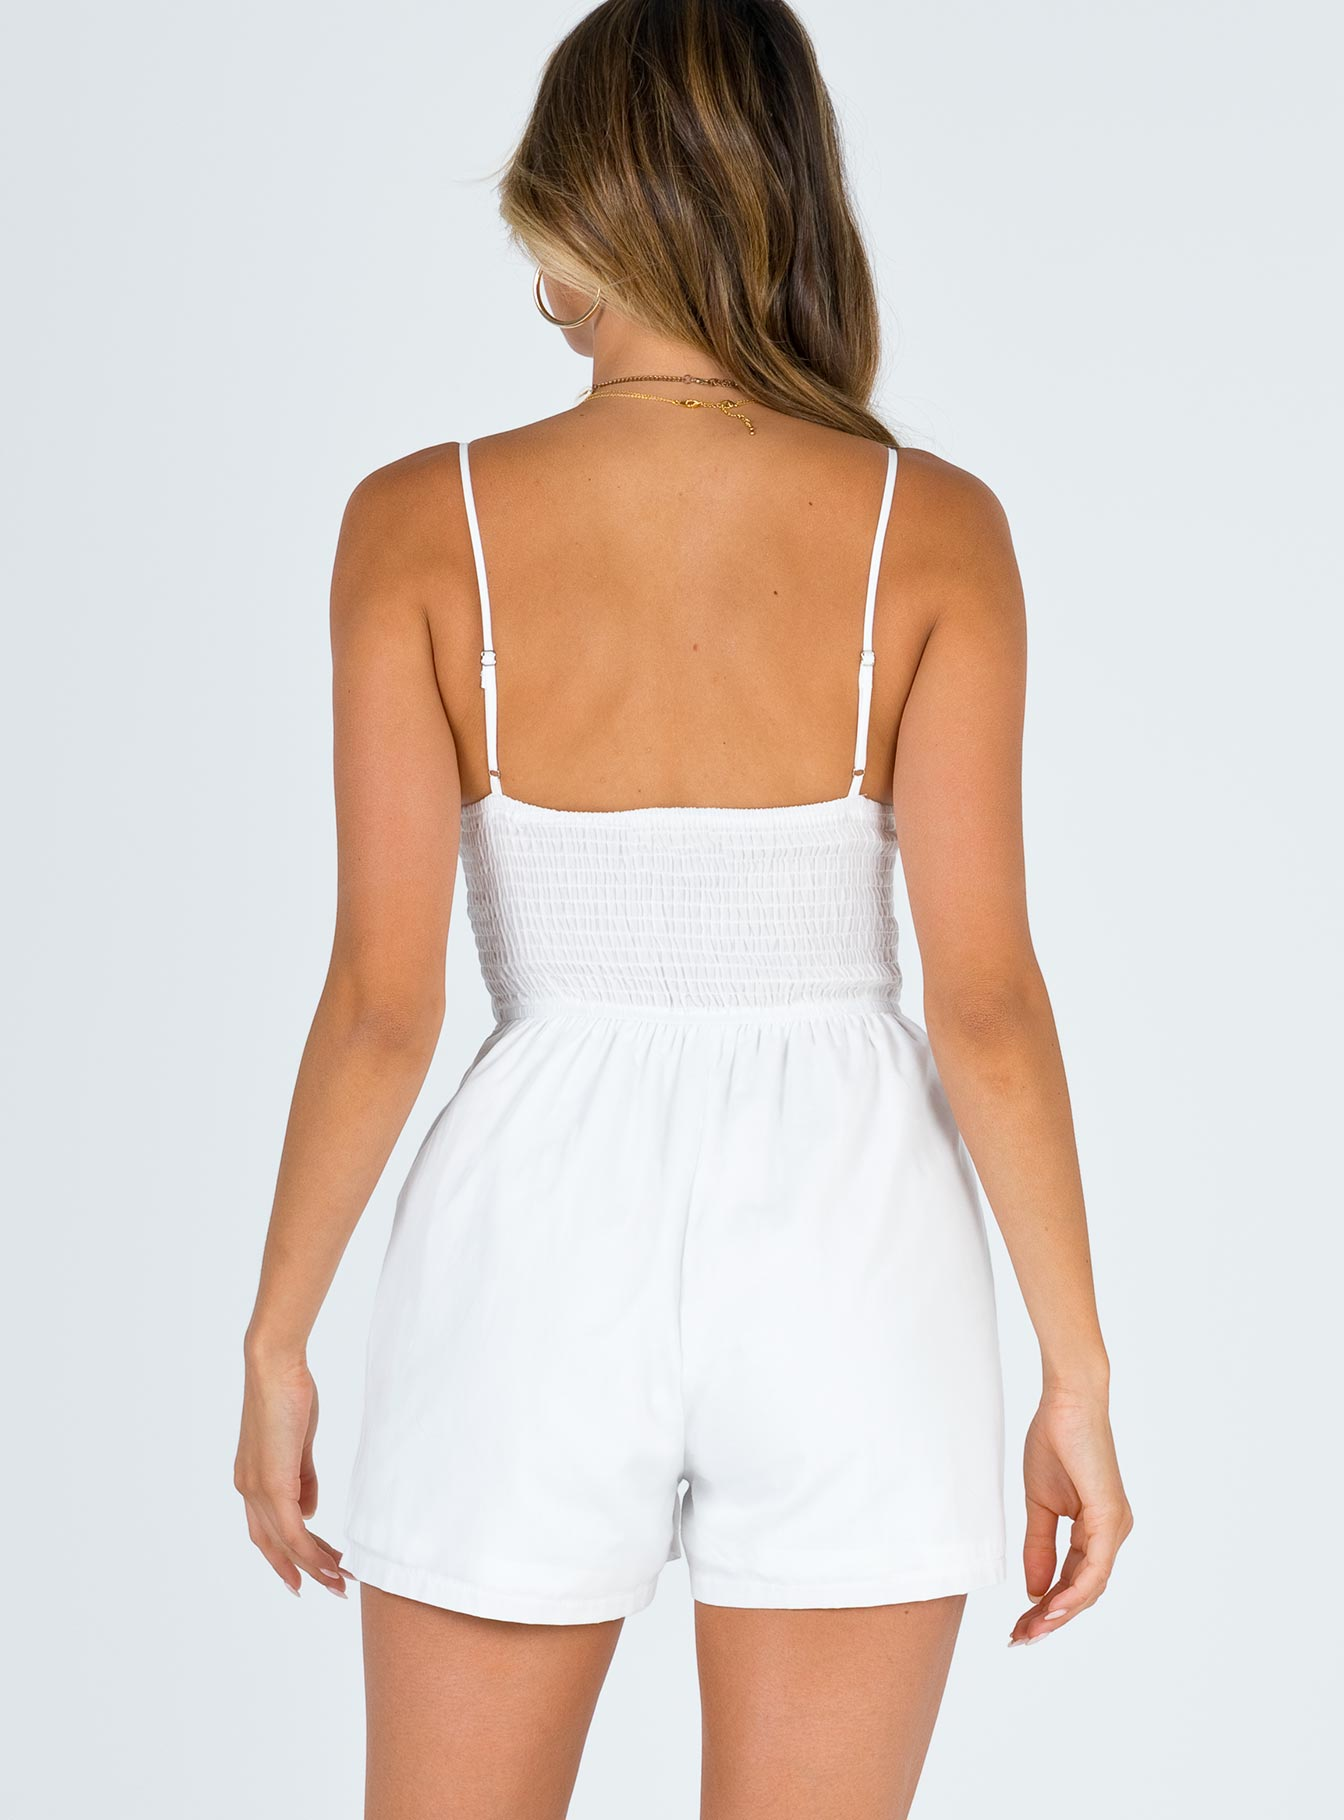 Pathways Romper